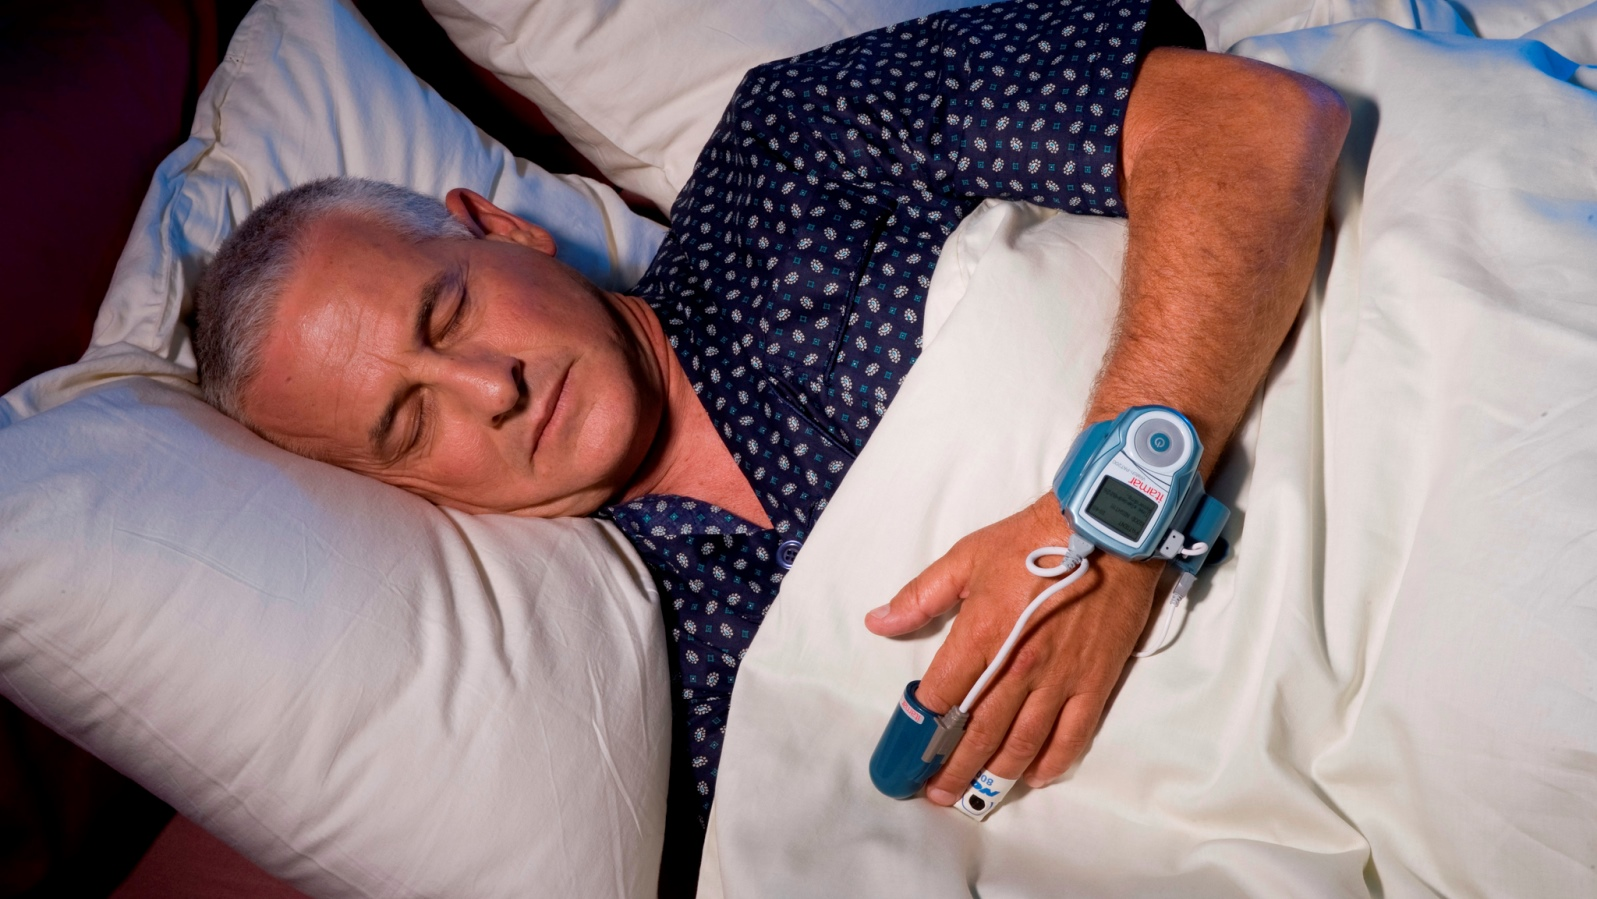 WatchPAT monitors sleep apnea at home. Photo: courtesy